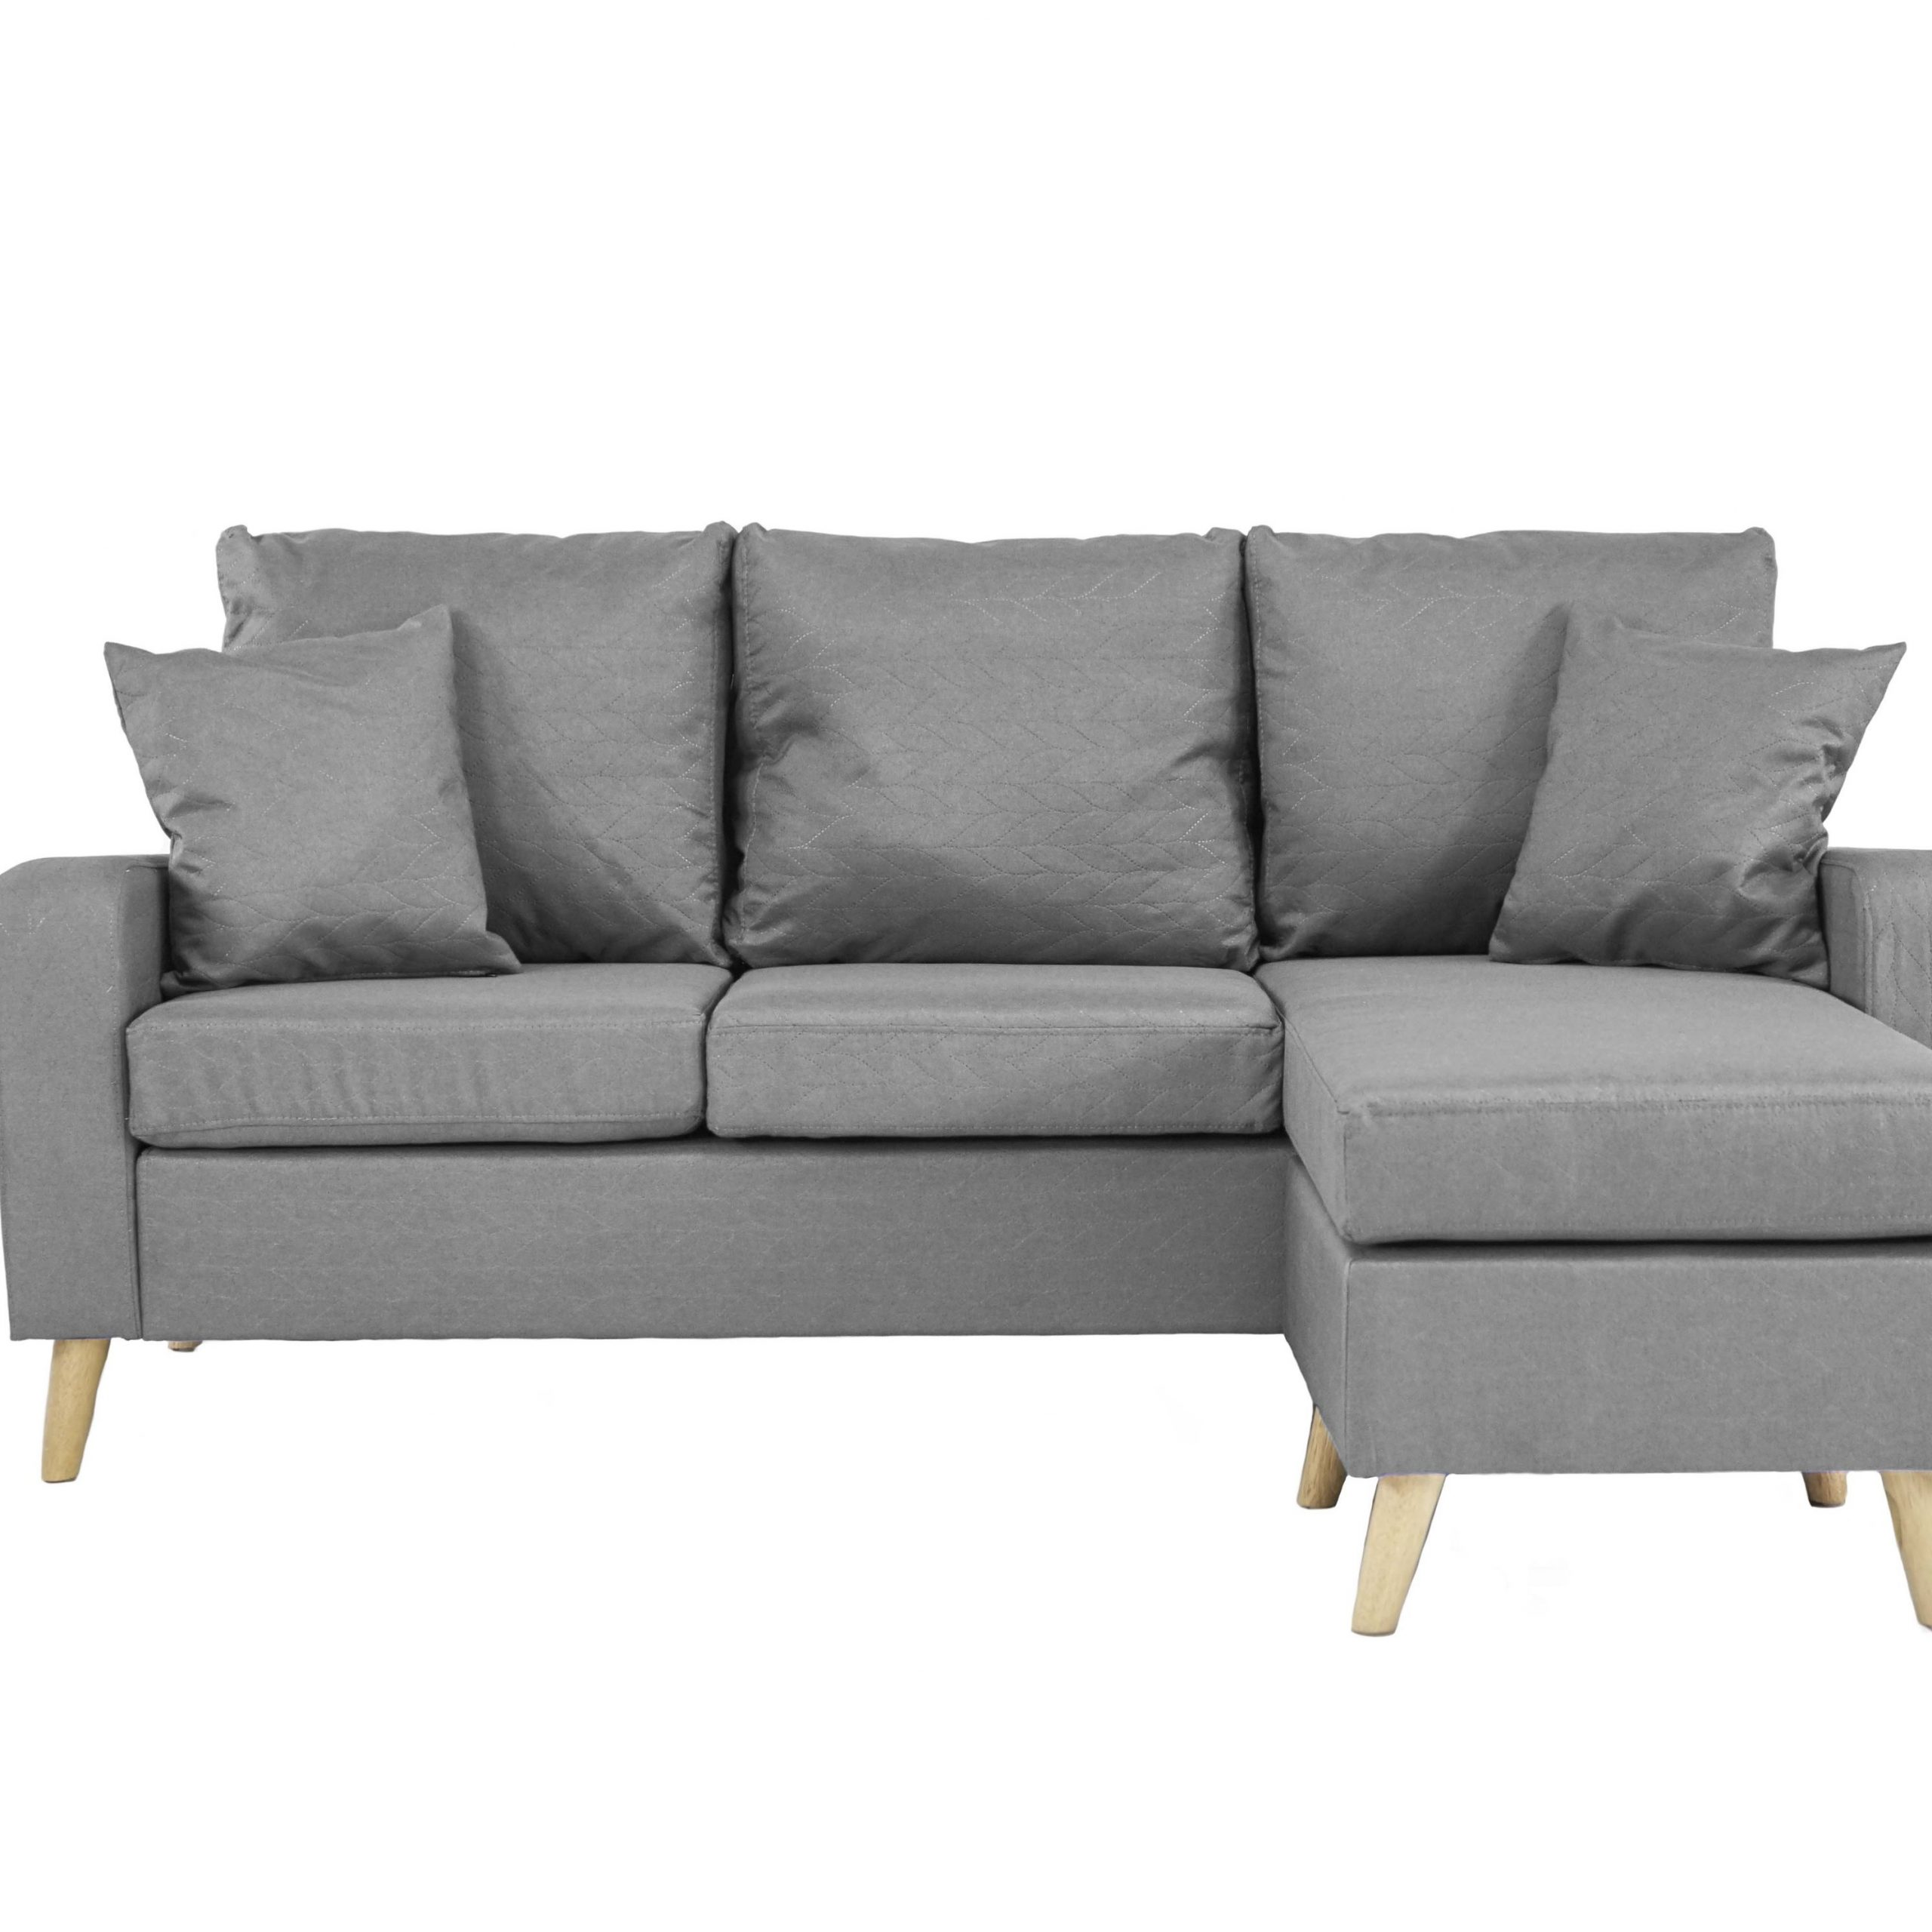 Dulce Mid Century Chaise Sofas Light Gray Pertaining To Most Current Grey Small Space Configurable L Shape Couch Sectional Sofa (View 1 of 20)